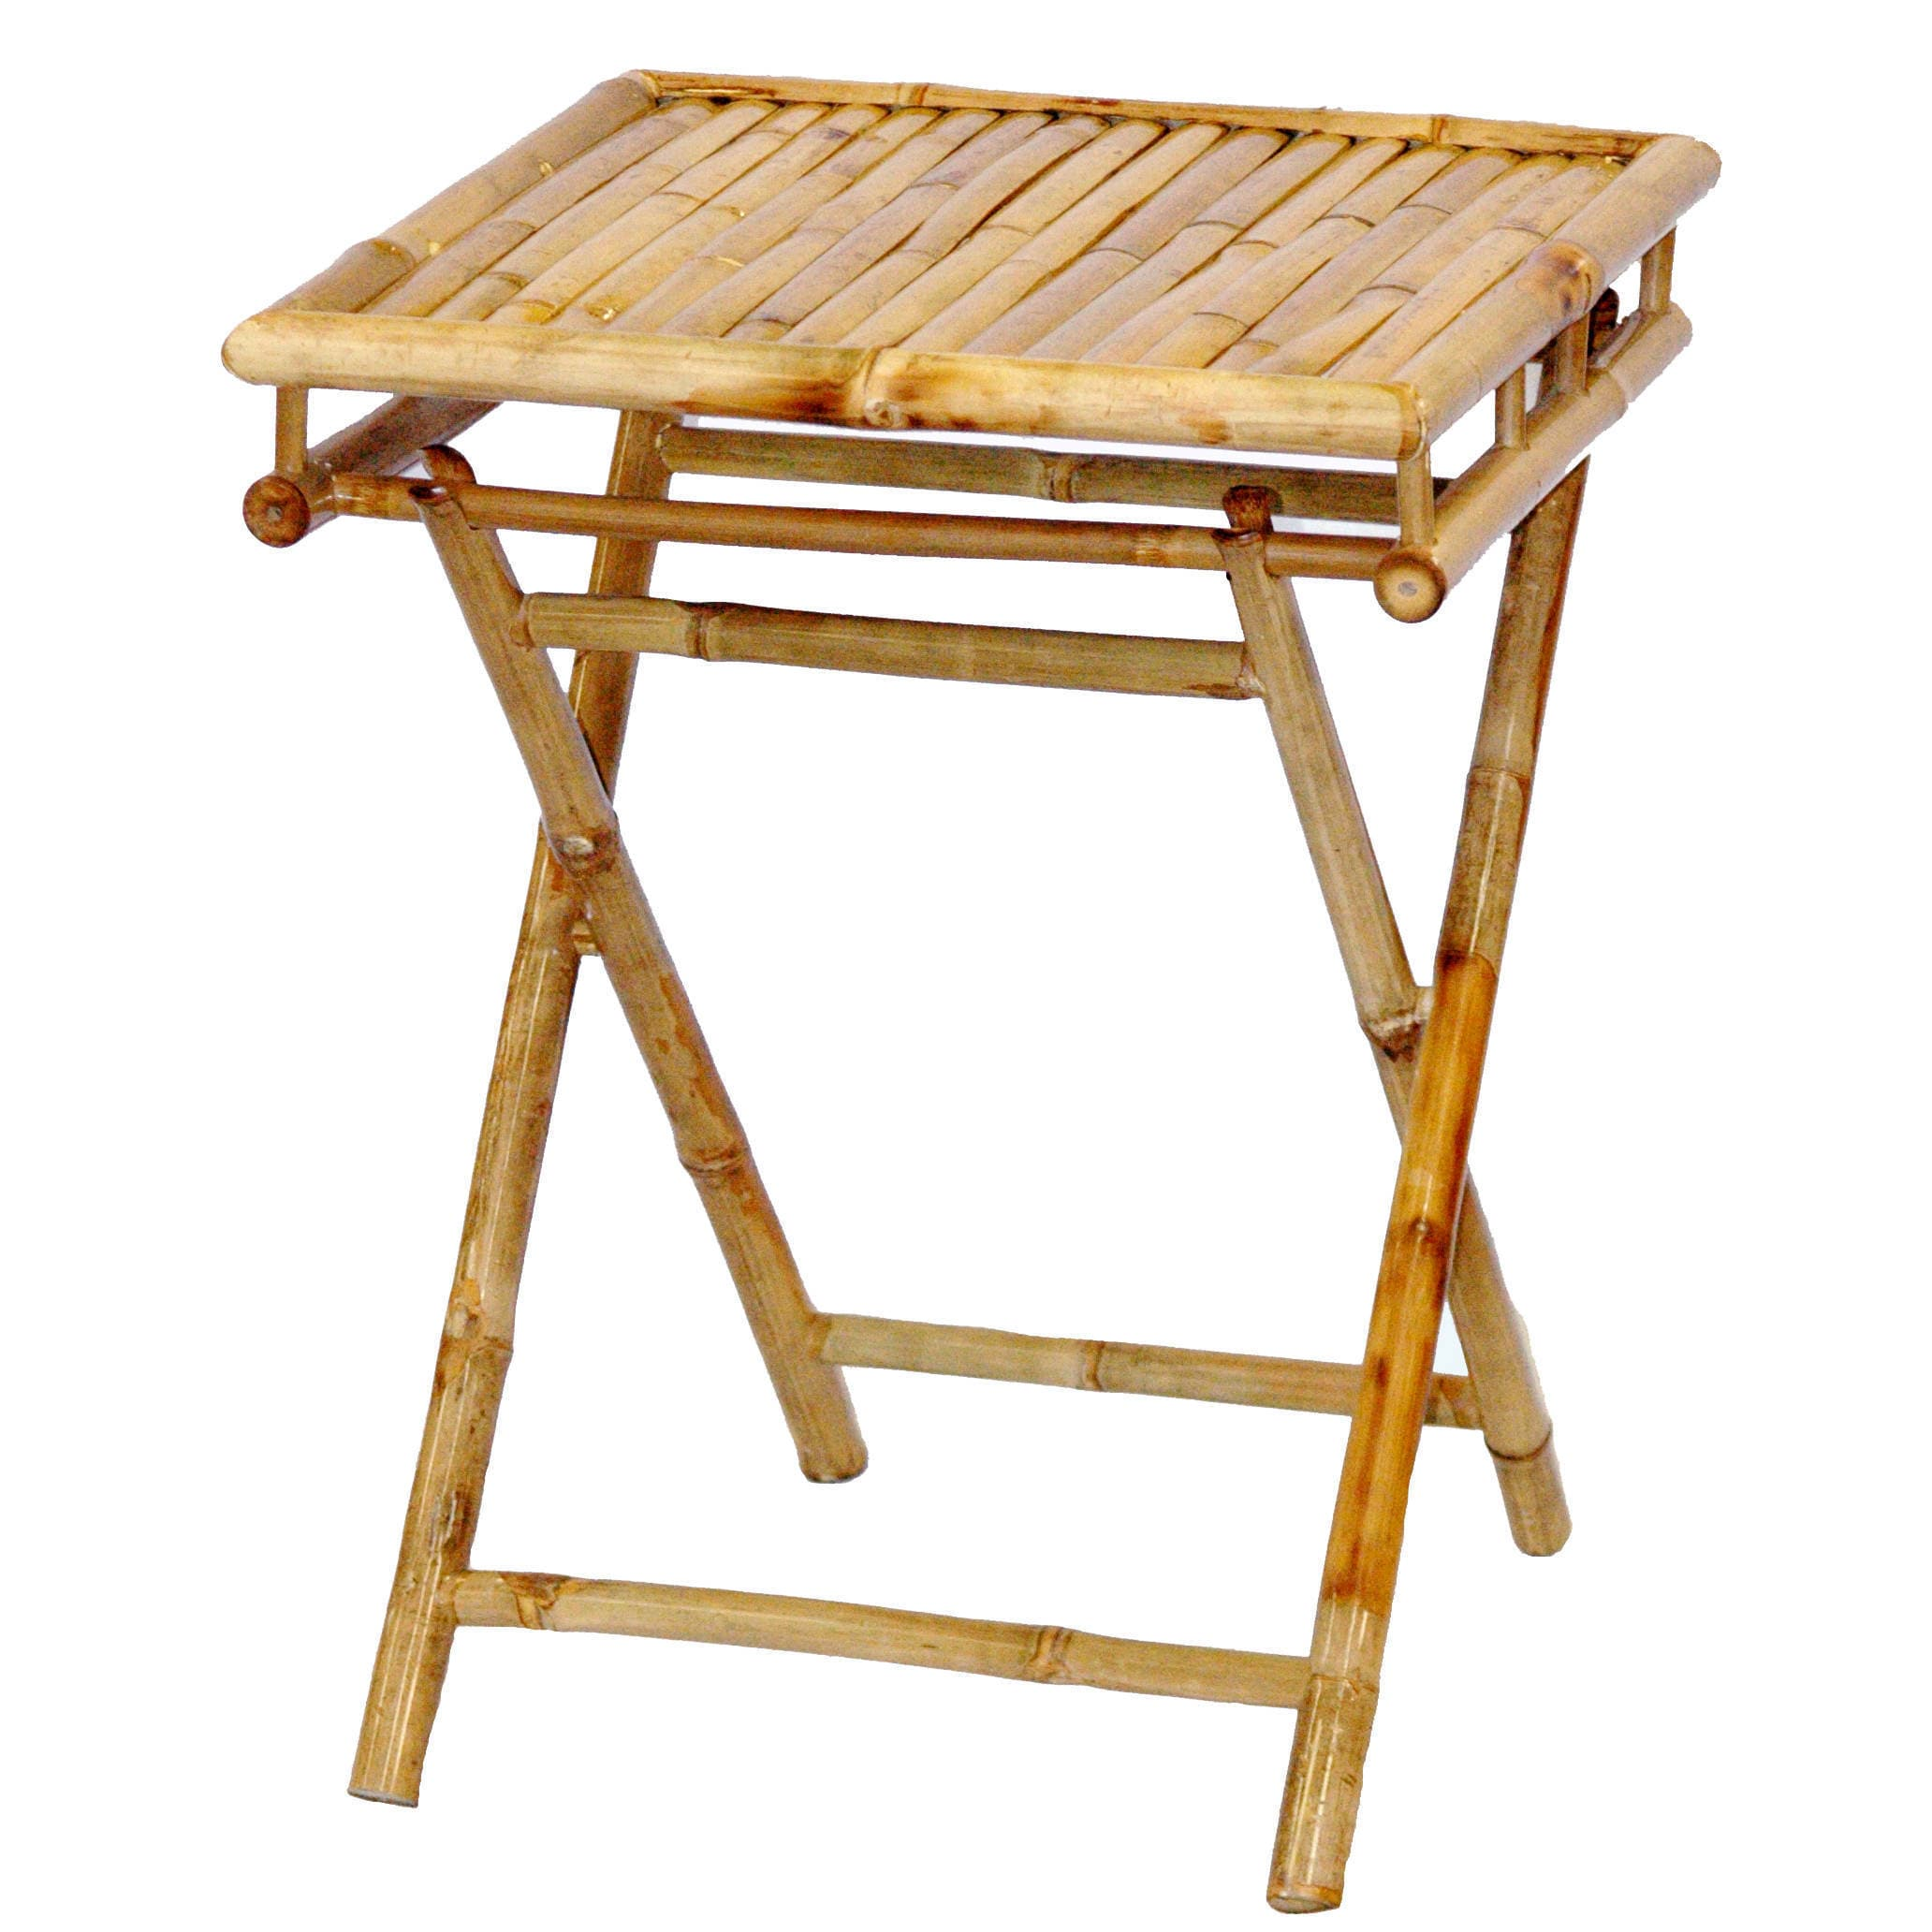 Shop Handmade Bistro Small Bamboo Table and Chairs Set (Vietnam) - Free Shipping Today - Overstock.com - 11519205  sc 1 st  Overstock.com & Shop Handmade Bistro Small Bamboo Table and Chairs Set (Vietnam ...